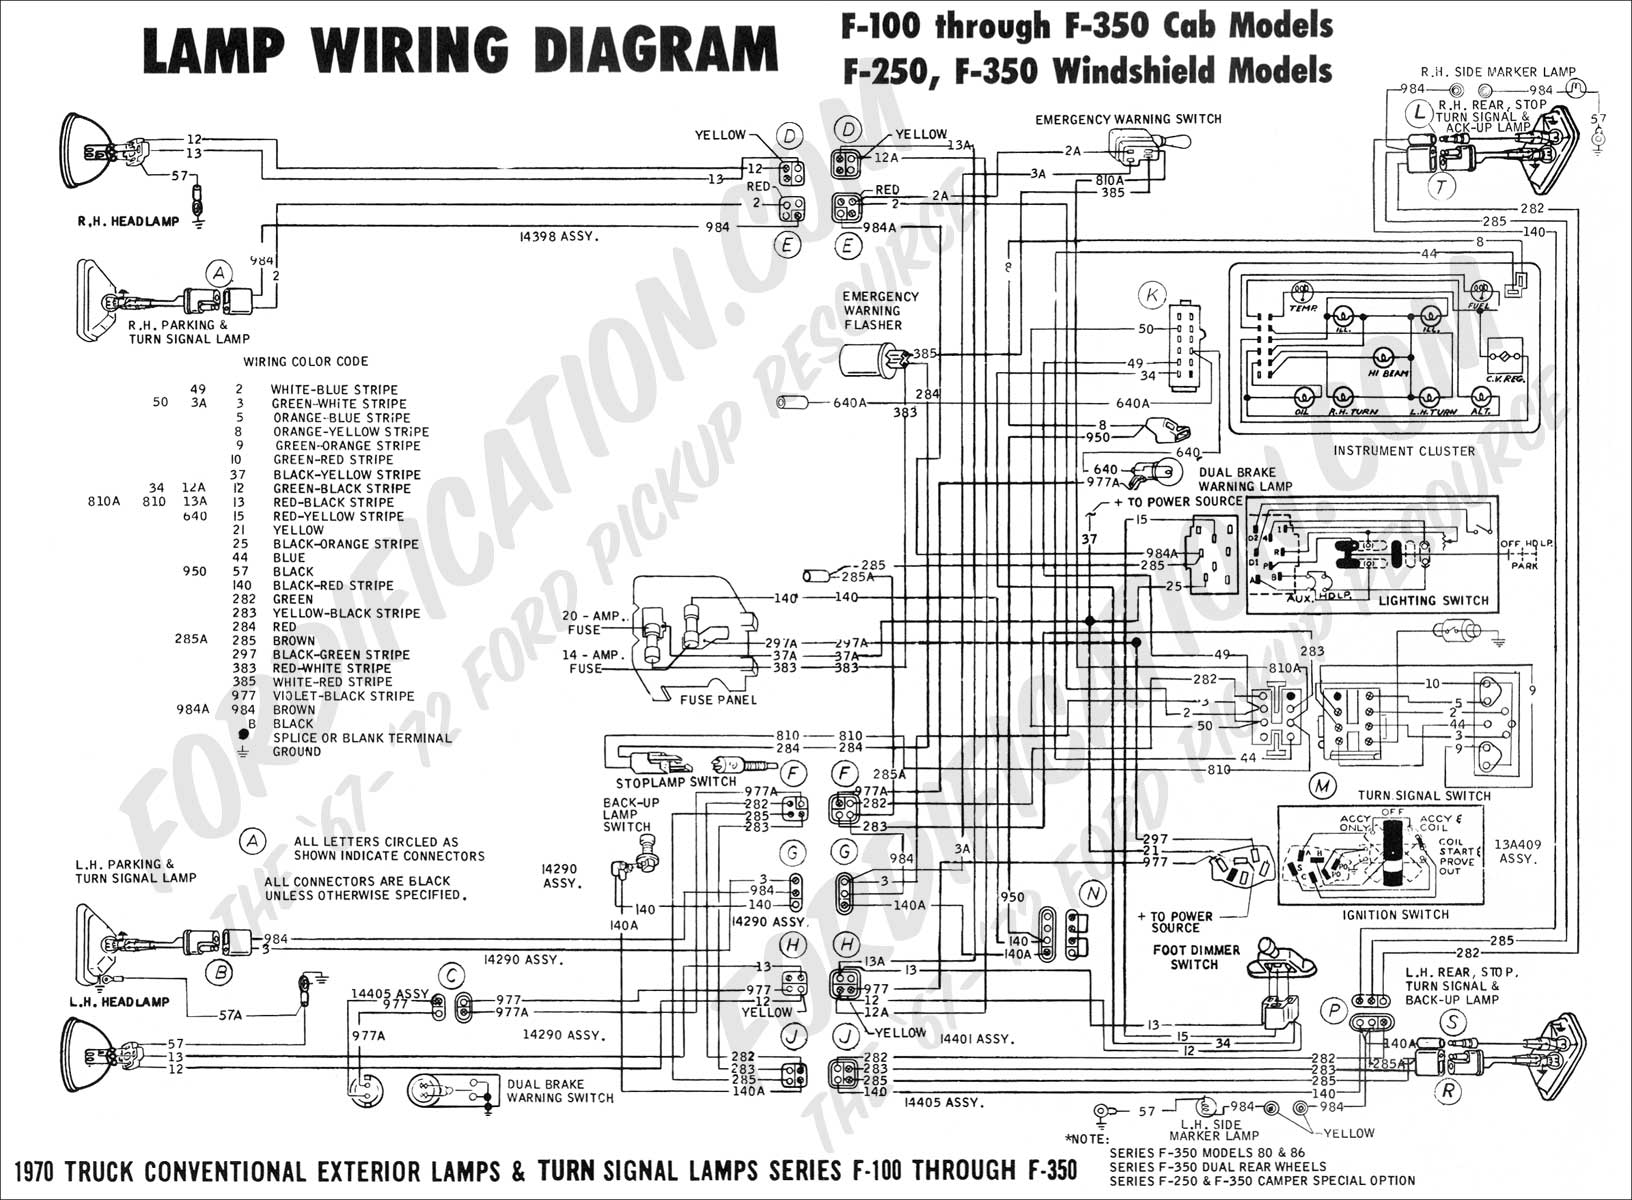 1990 Ford Mustang Engine Wire Harness Wiring Library Diagram Truck Technical Drawings And Schematics Section H Rh Fordification Com 1968 F100